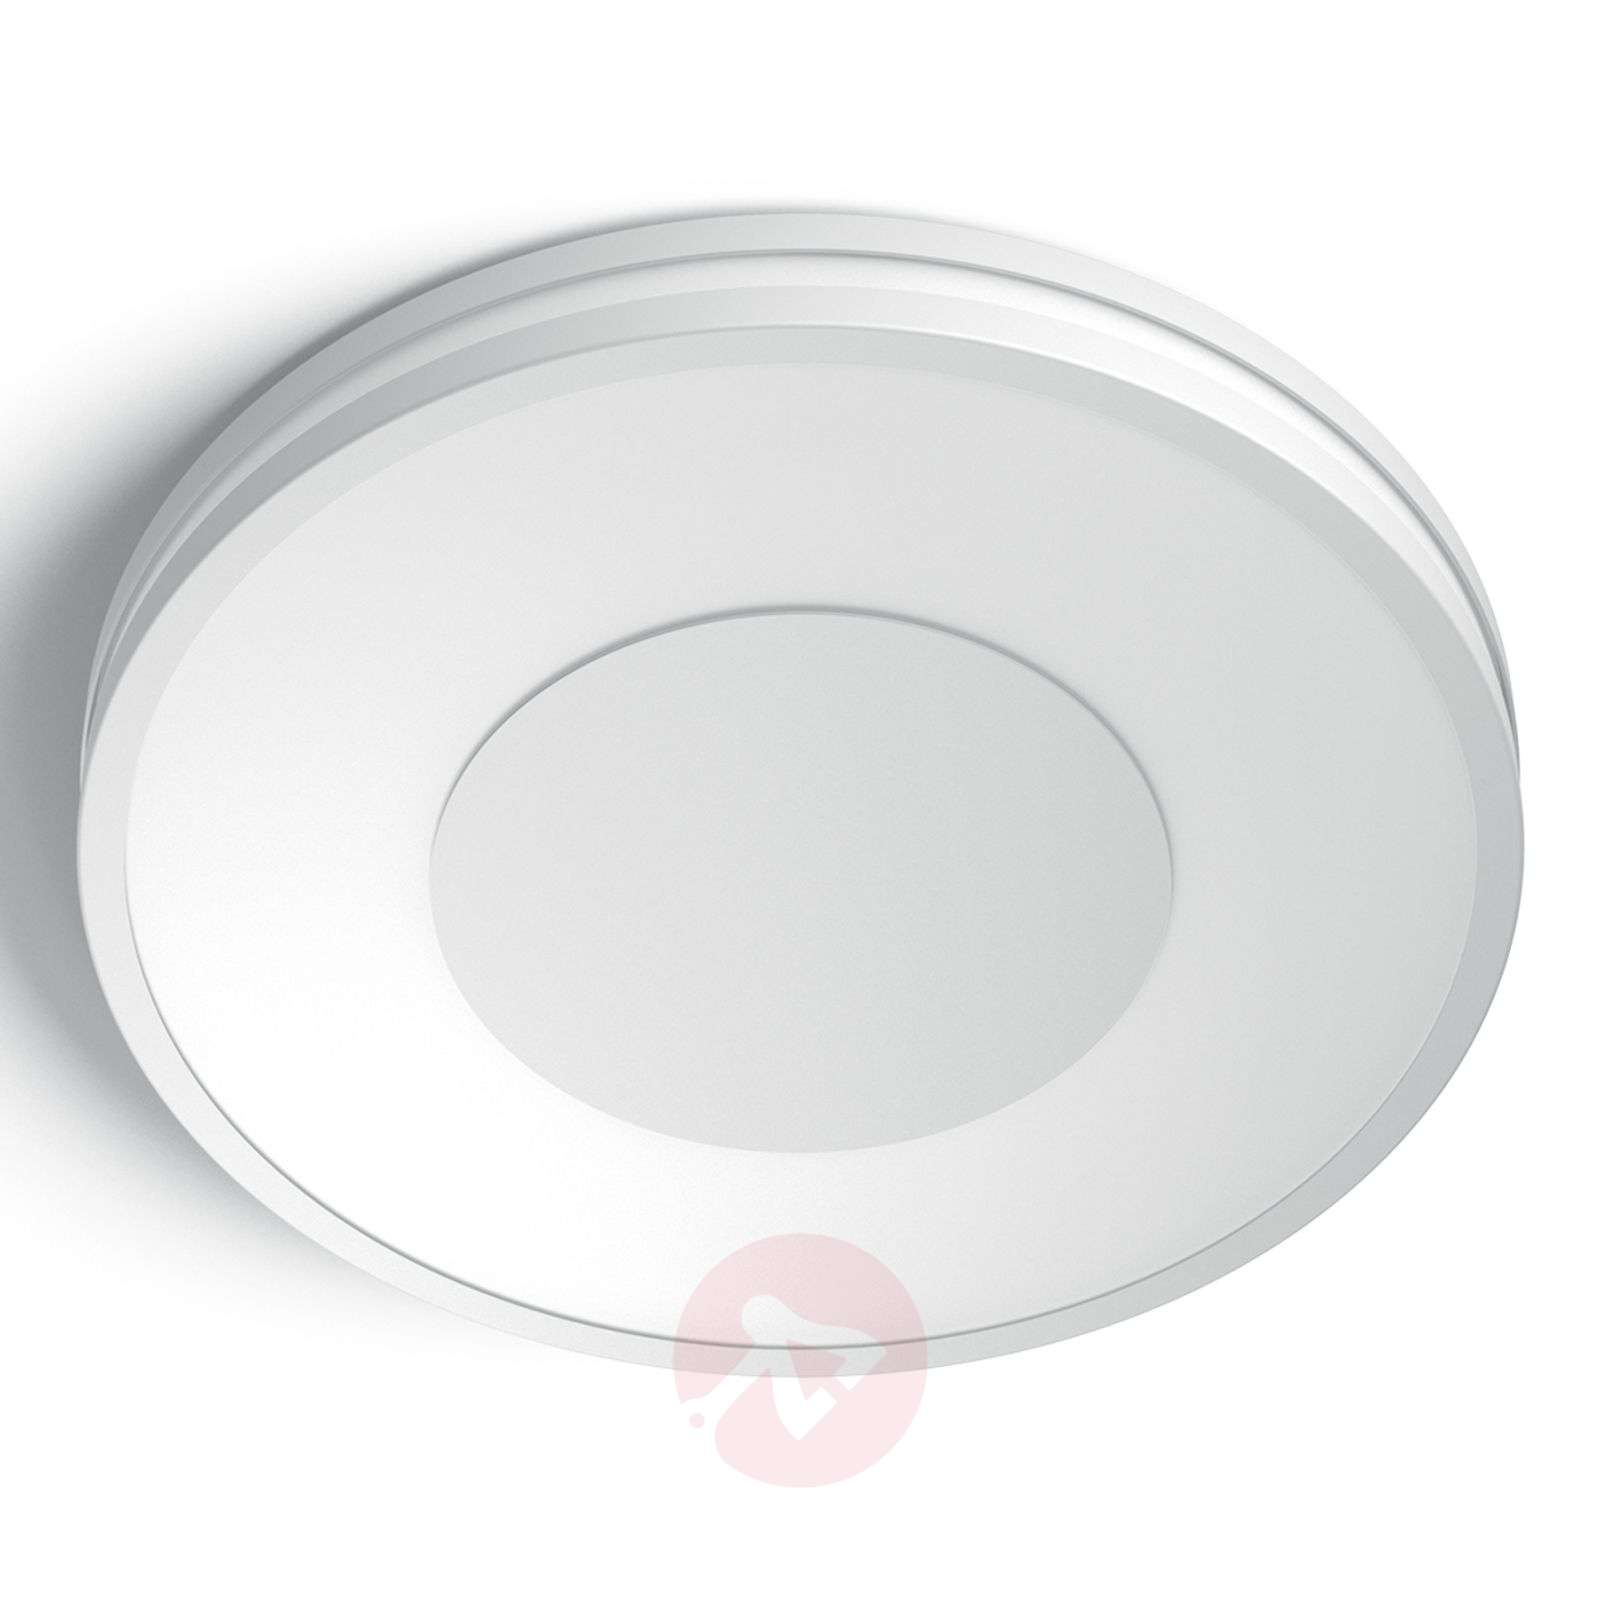 Funktionaalinen LED-kattovalo Philips Hue Being-7531866-01